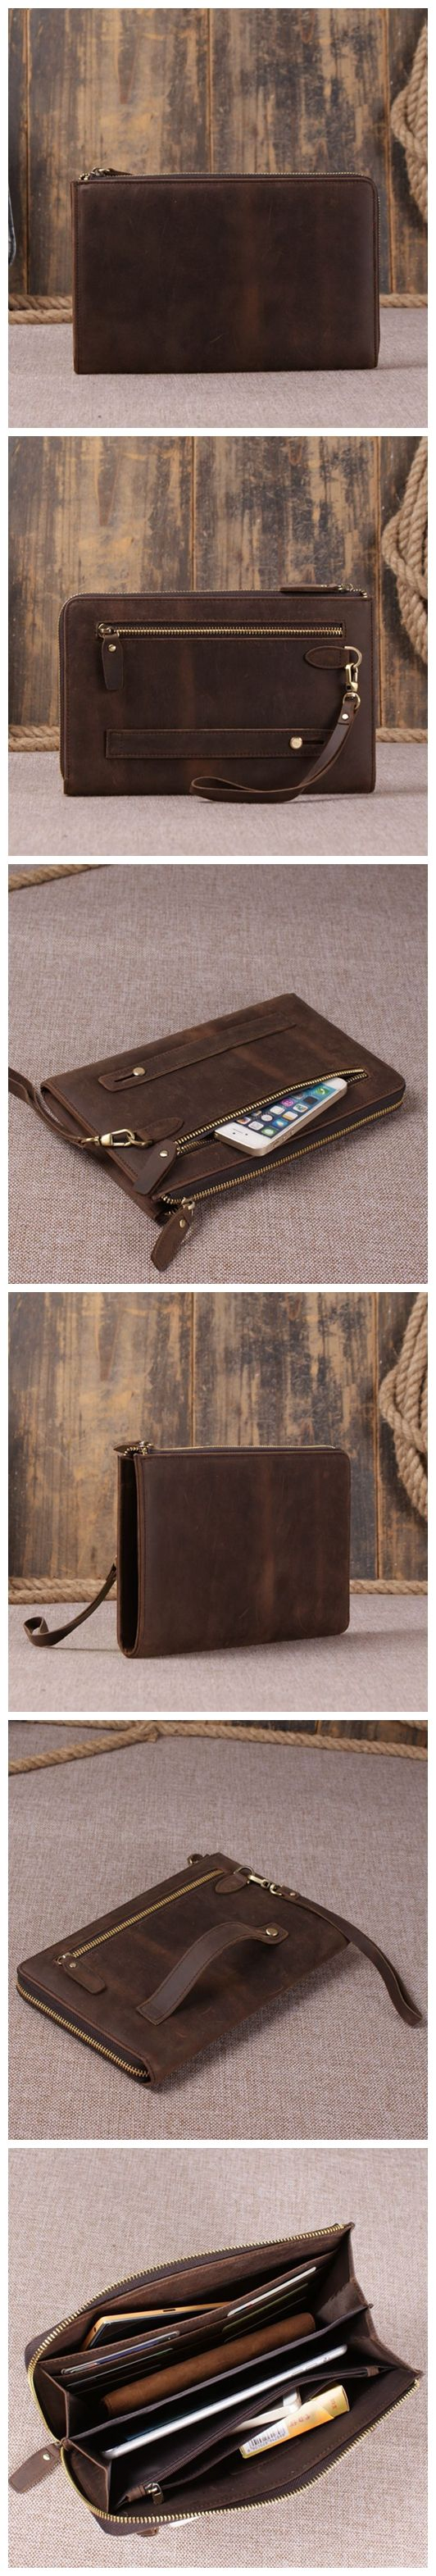 HANDMADE GENUINE LEATHER TRAVEL WALLET, LEATHER CLUTCH, IPAD BAG, WRISTLET BAG, MEN WALLET, IPAD SLEEVE, LEATHER PURSE, MEN'S GIFT